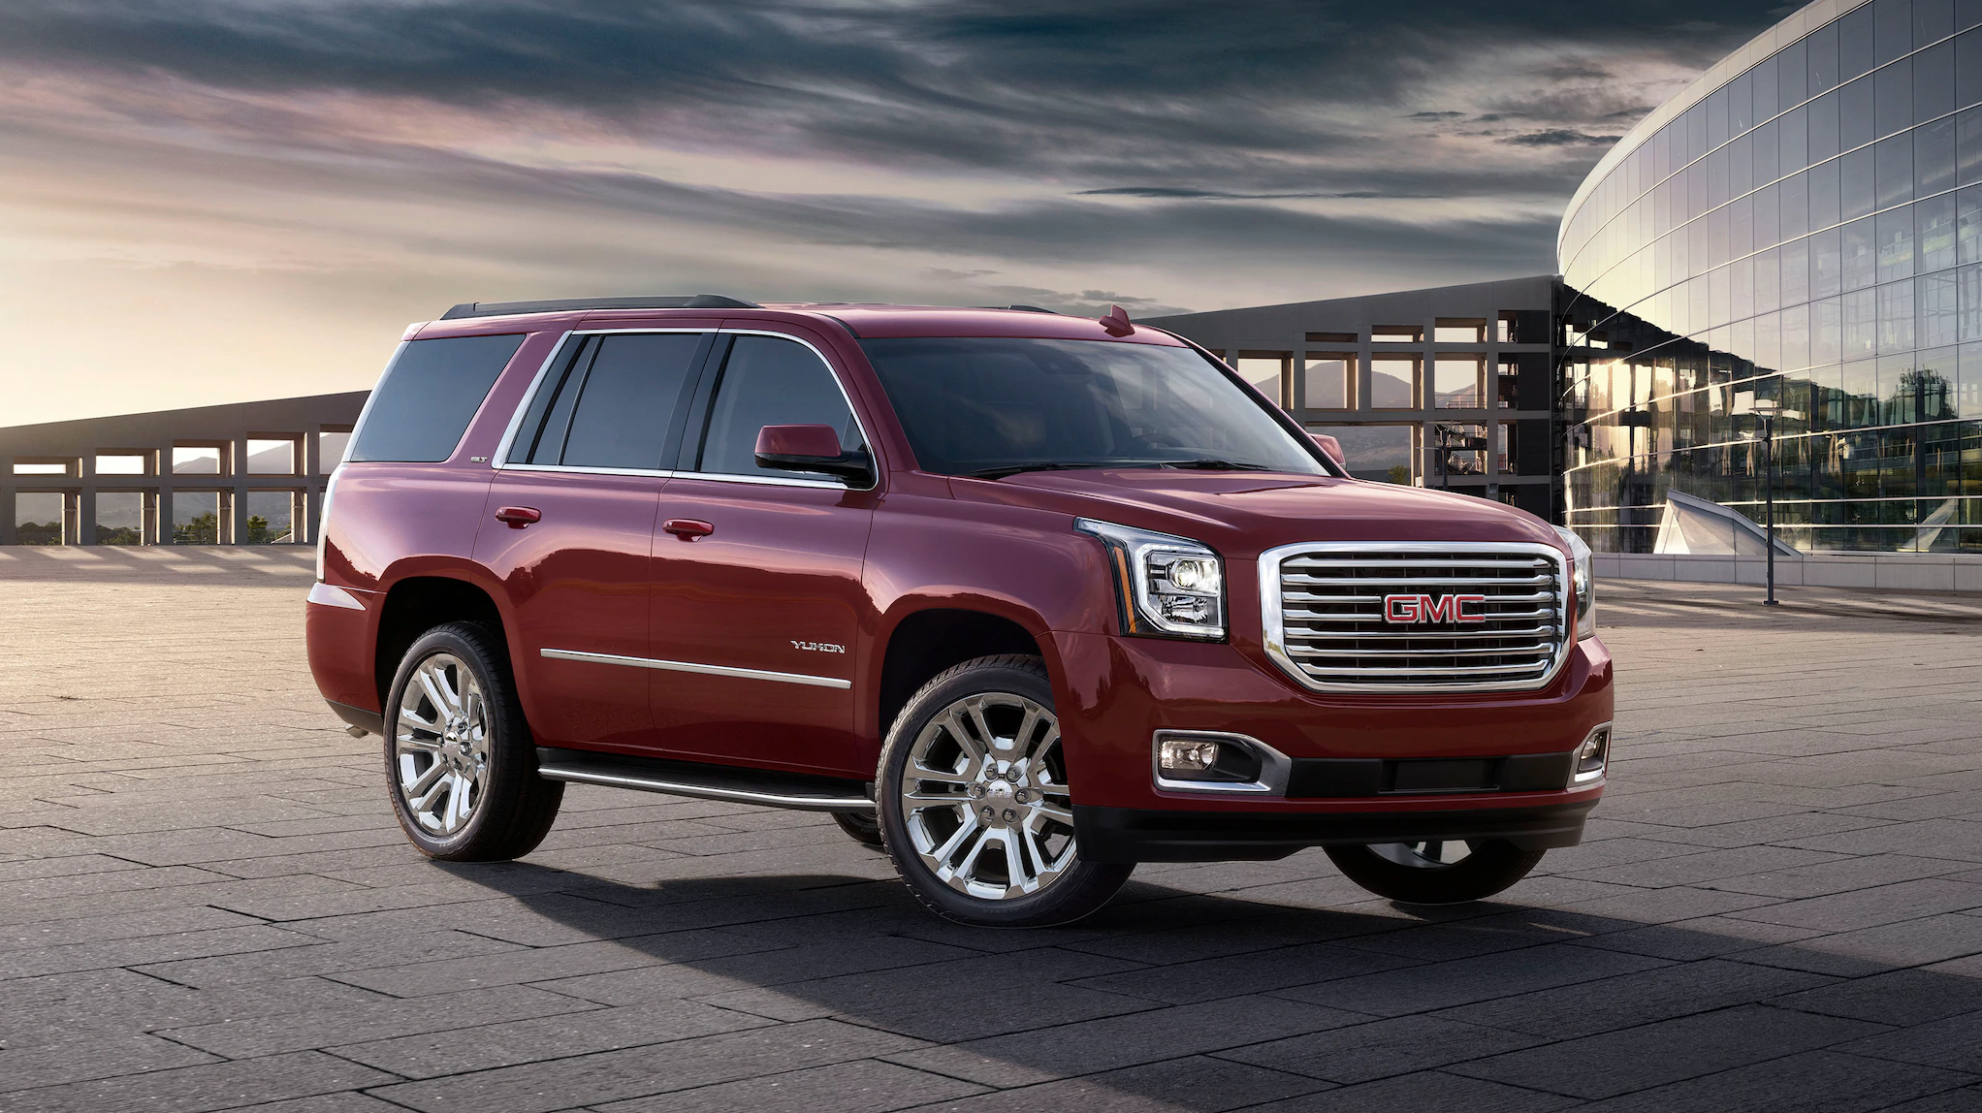 11 Wallpaper 2020 Gmc Price In 2020 Gmc Yukon Gmc Yukon Xl Gmc